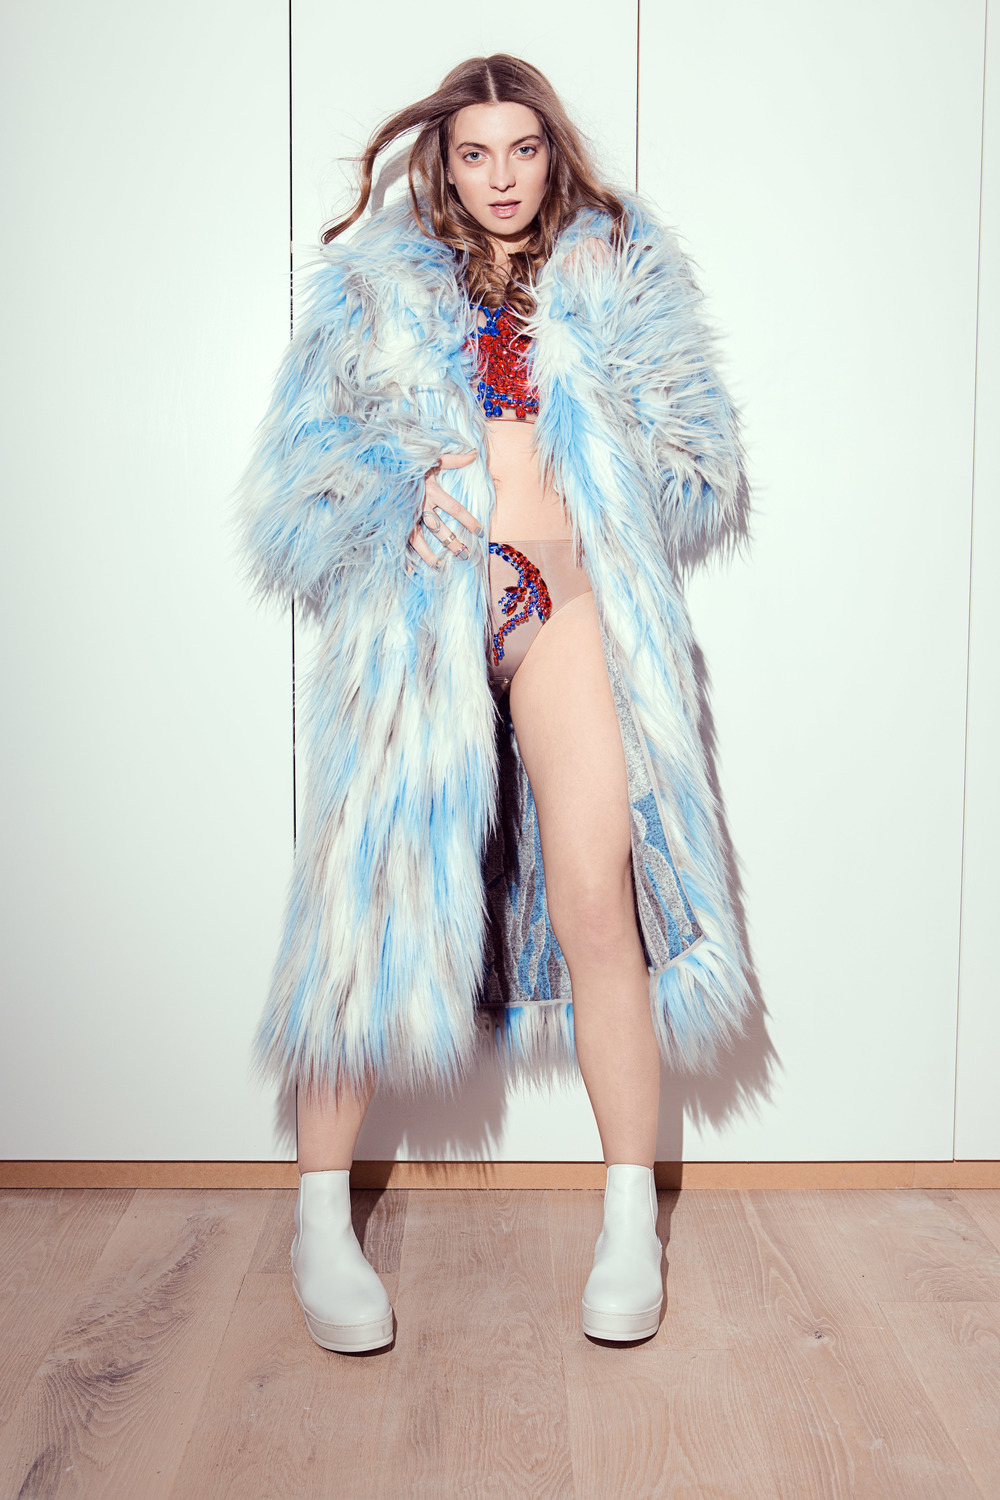 SCV heart top & knickers: Olga Noronha Jewellery; Faux fur coat: Alexandra Moura; Boots: Ante London